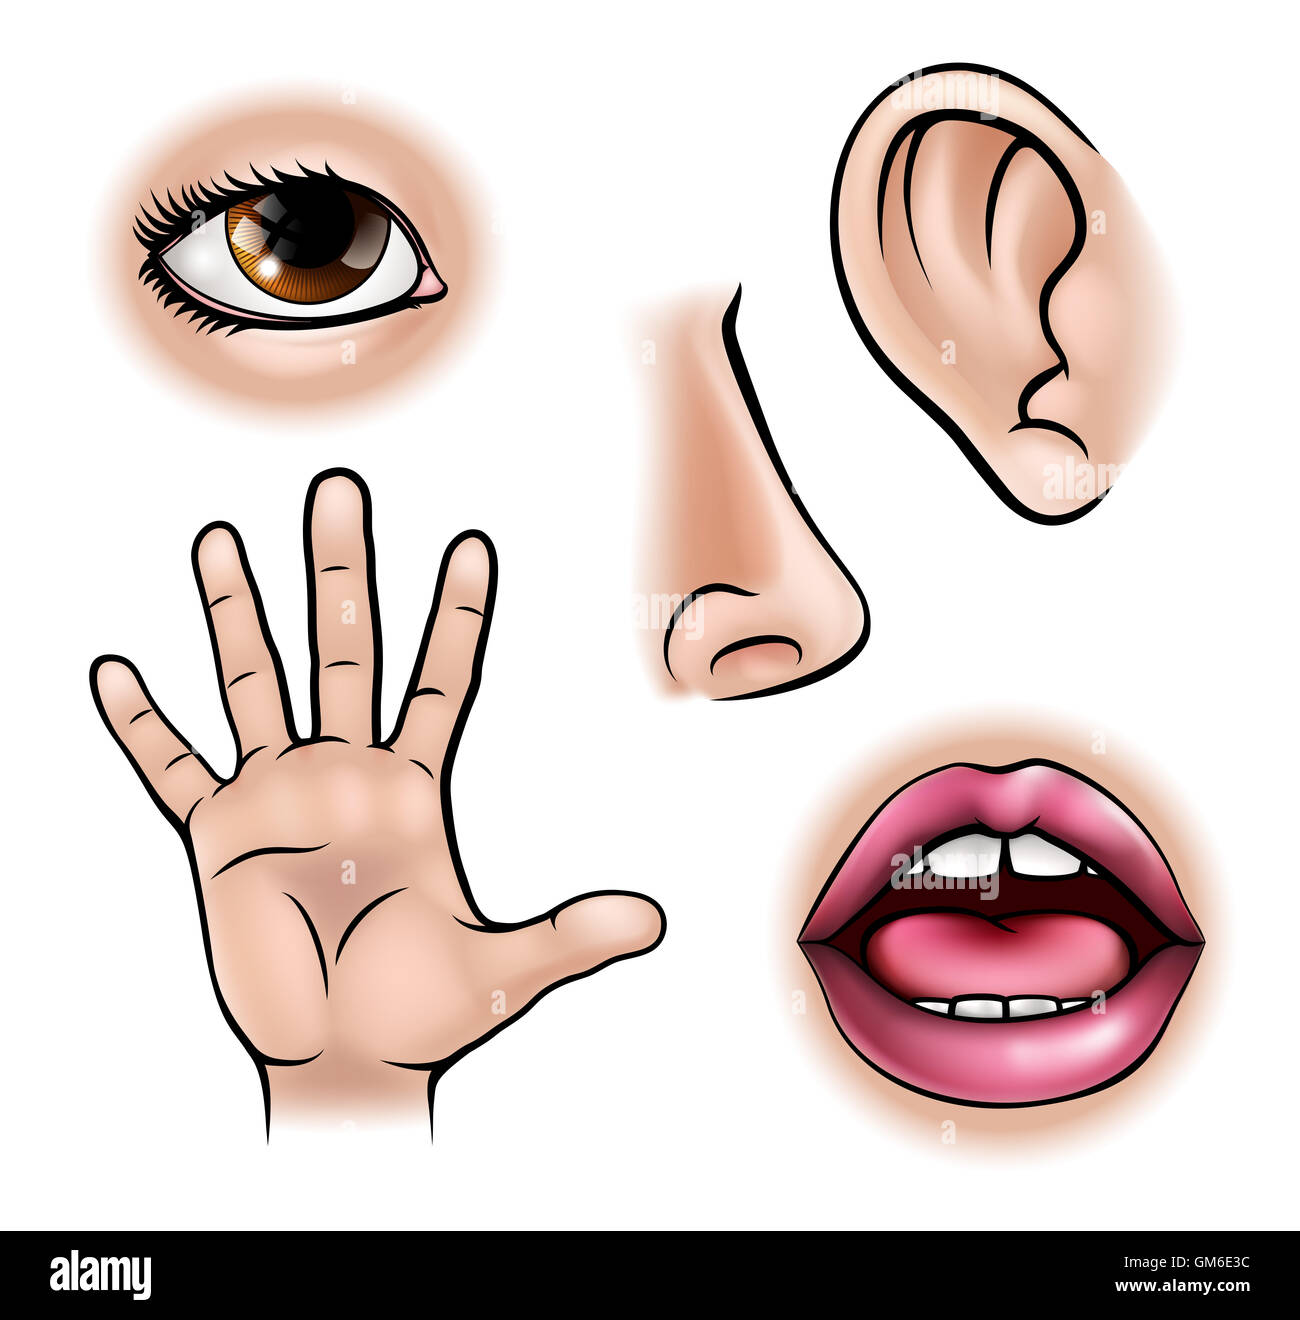 Five Senses Illustration High Resolution Stock Photography